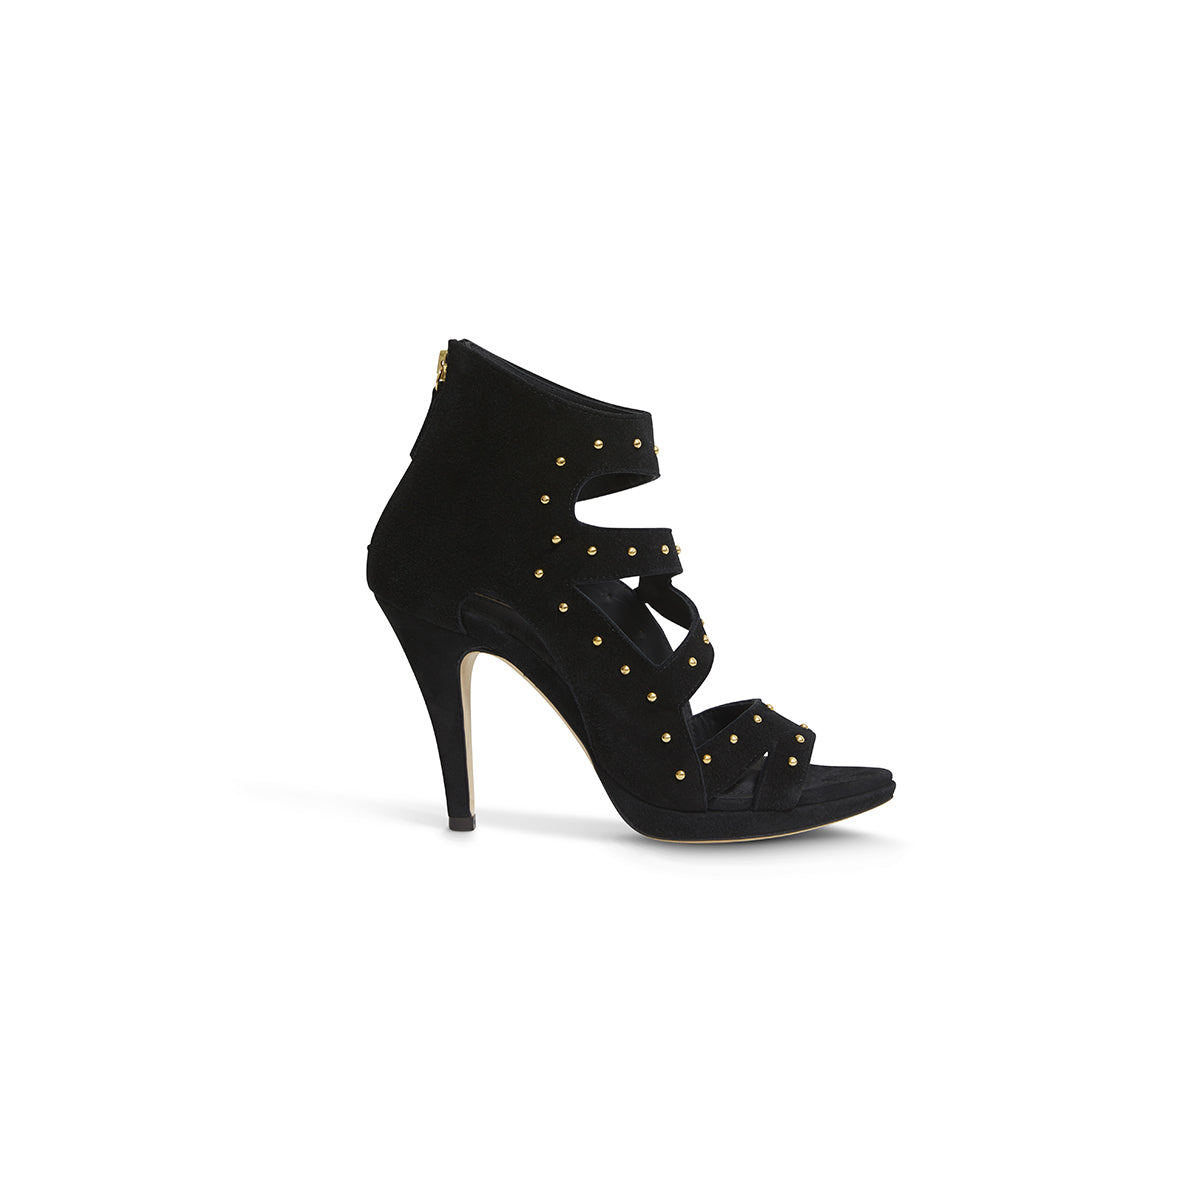 Dare Black Suede with Gold Studs